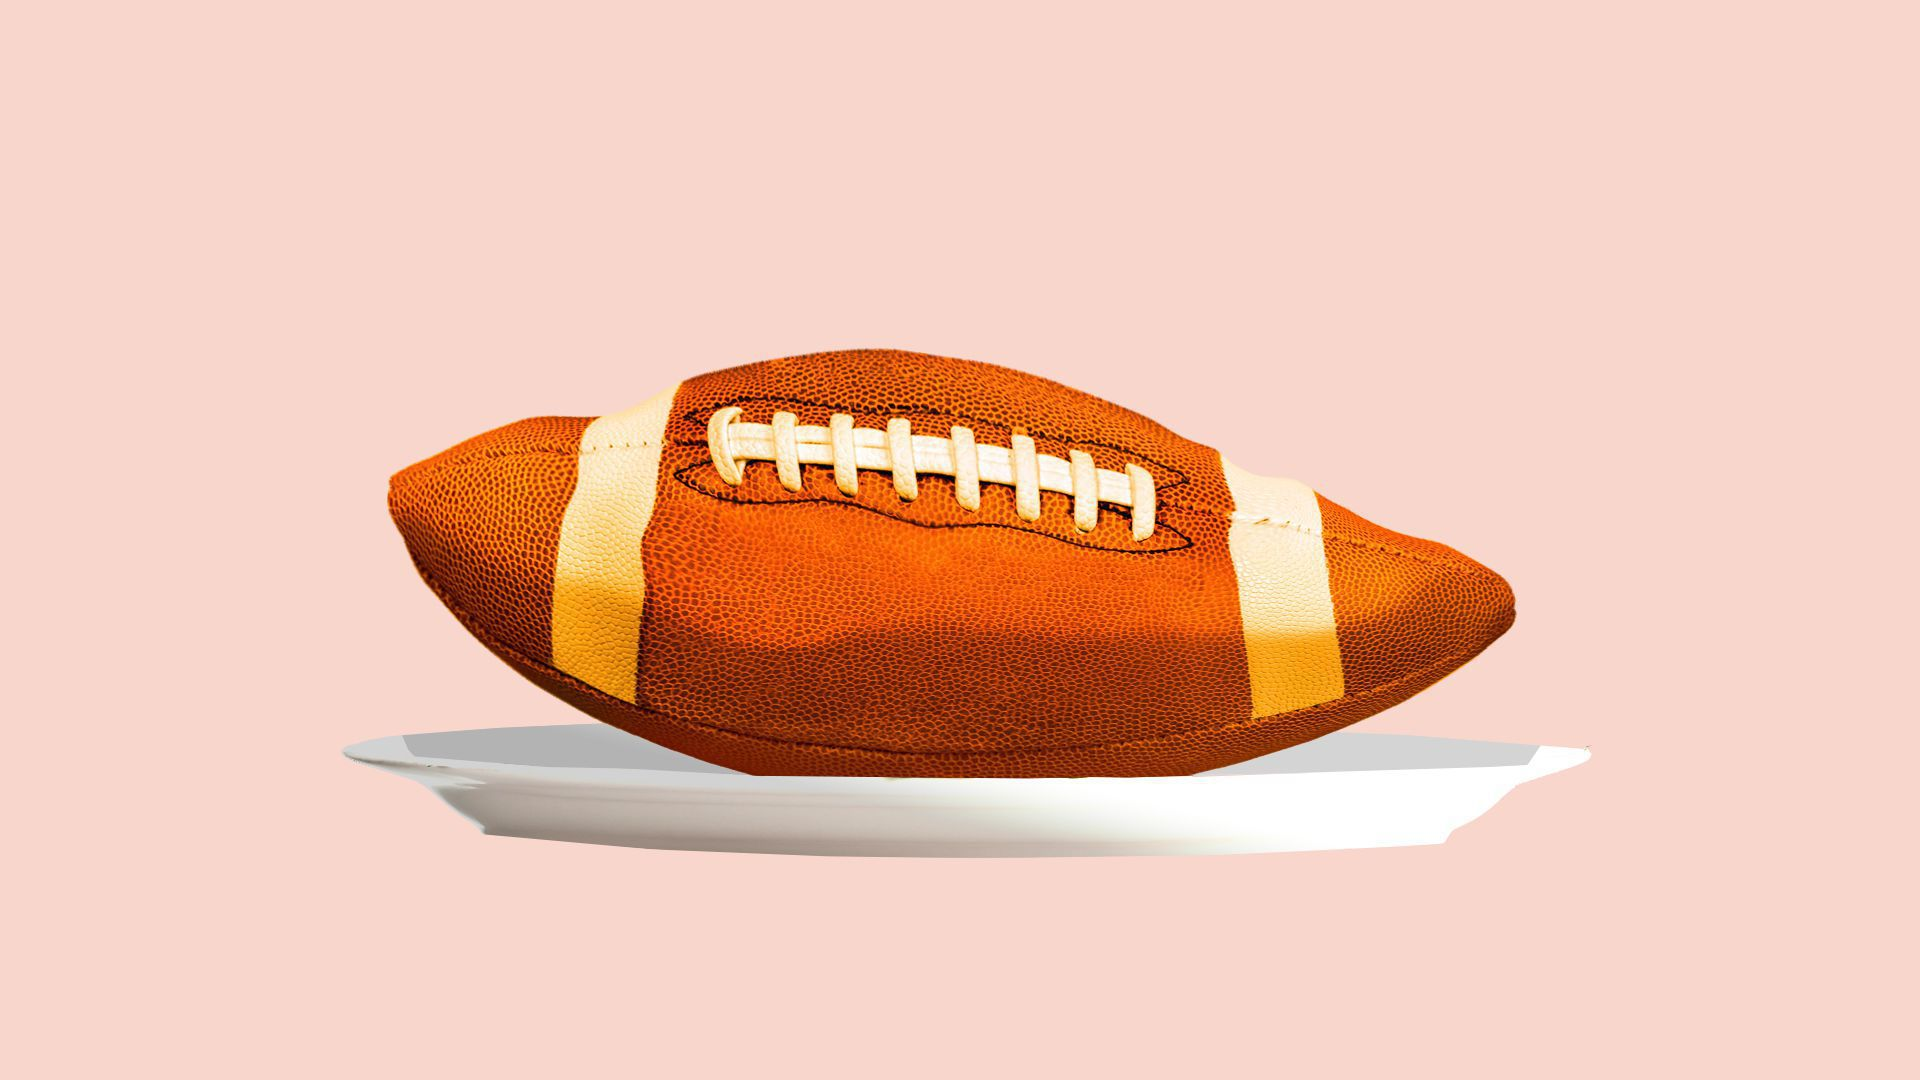 Photo illustration of a deflated football